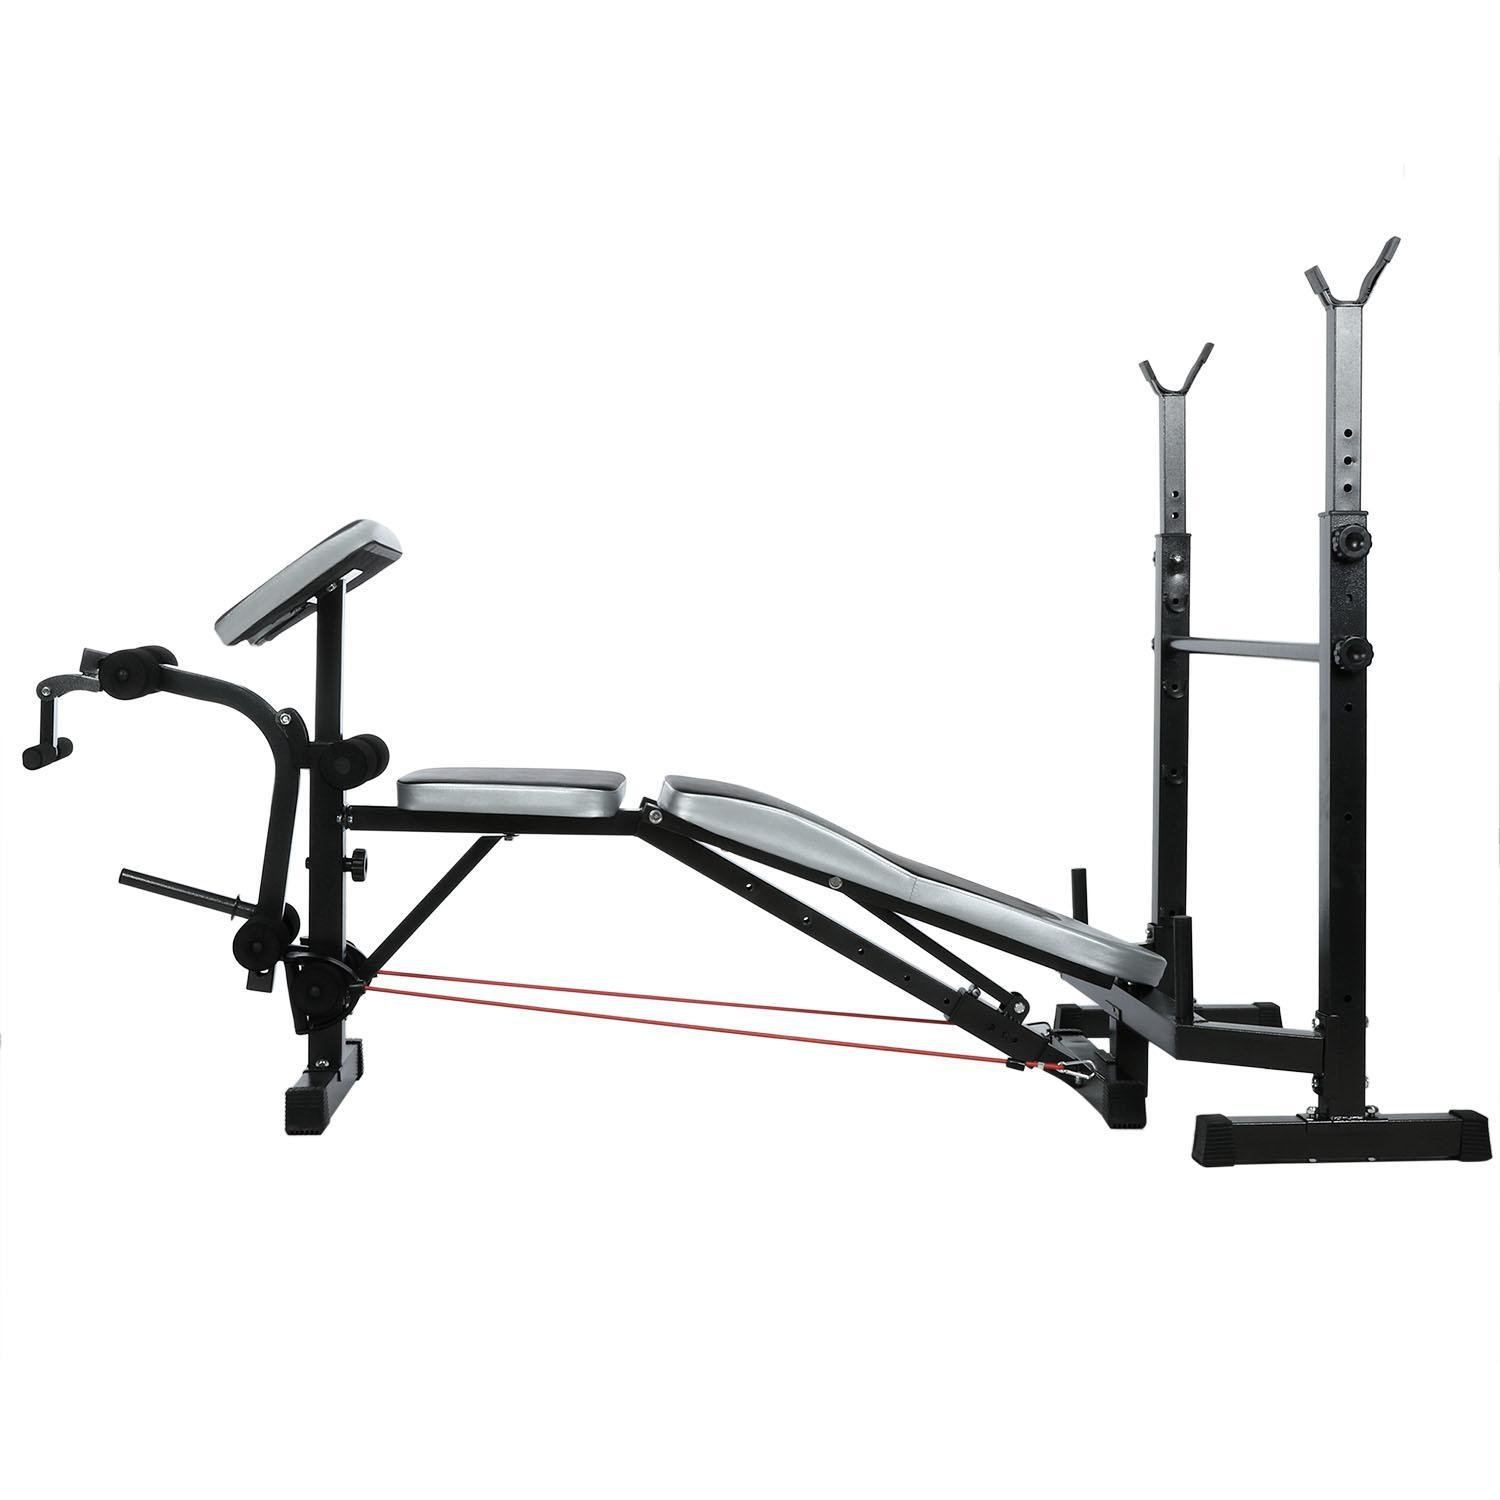 Olympic Wider Weight Bench Set for Home Gym Workout Power Training Exercising, Adjustable Bench Seat with Barbell Rack by Evokem (Image #3)